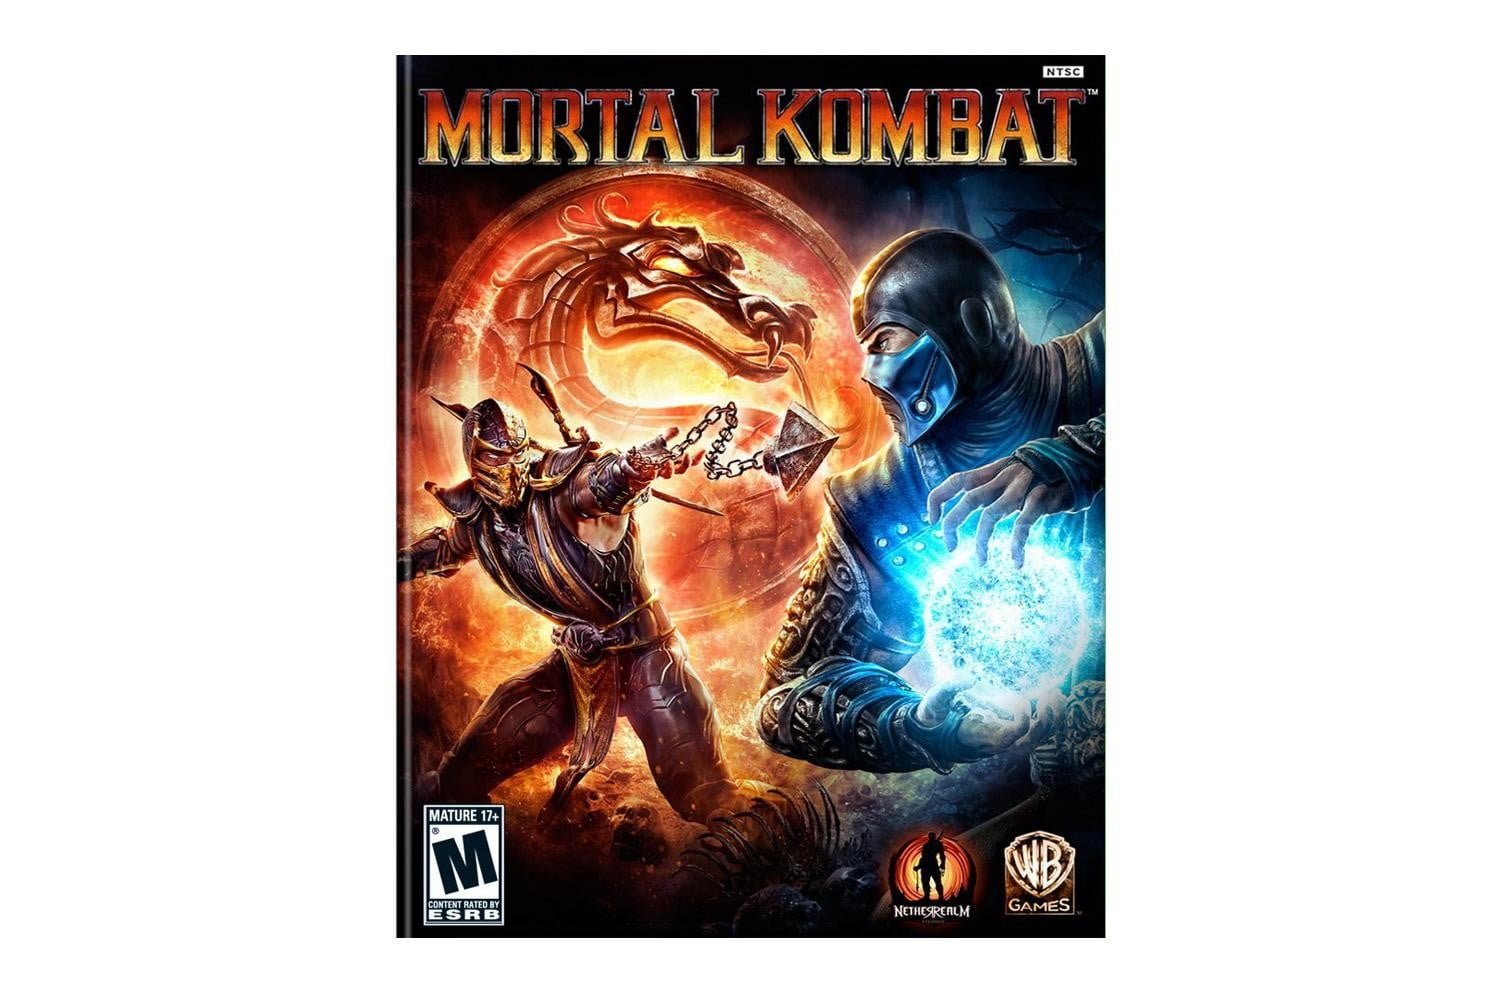 Mortal-Kombat-cover-art